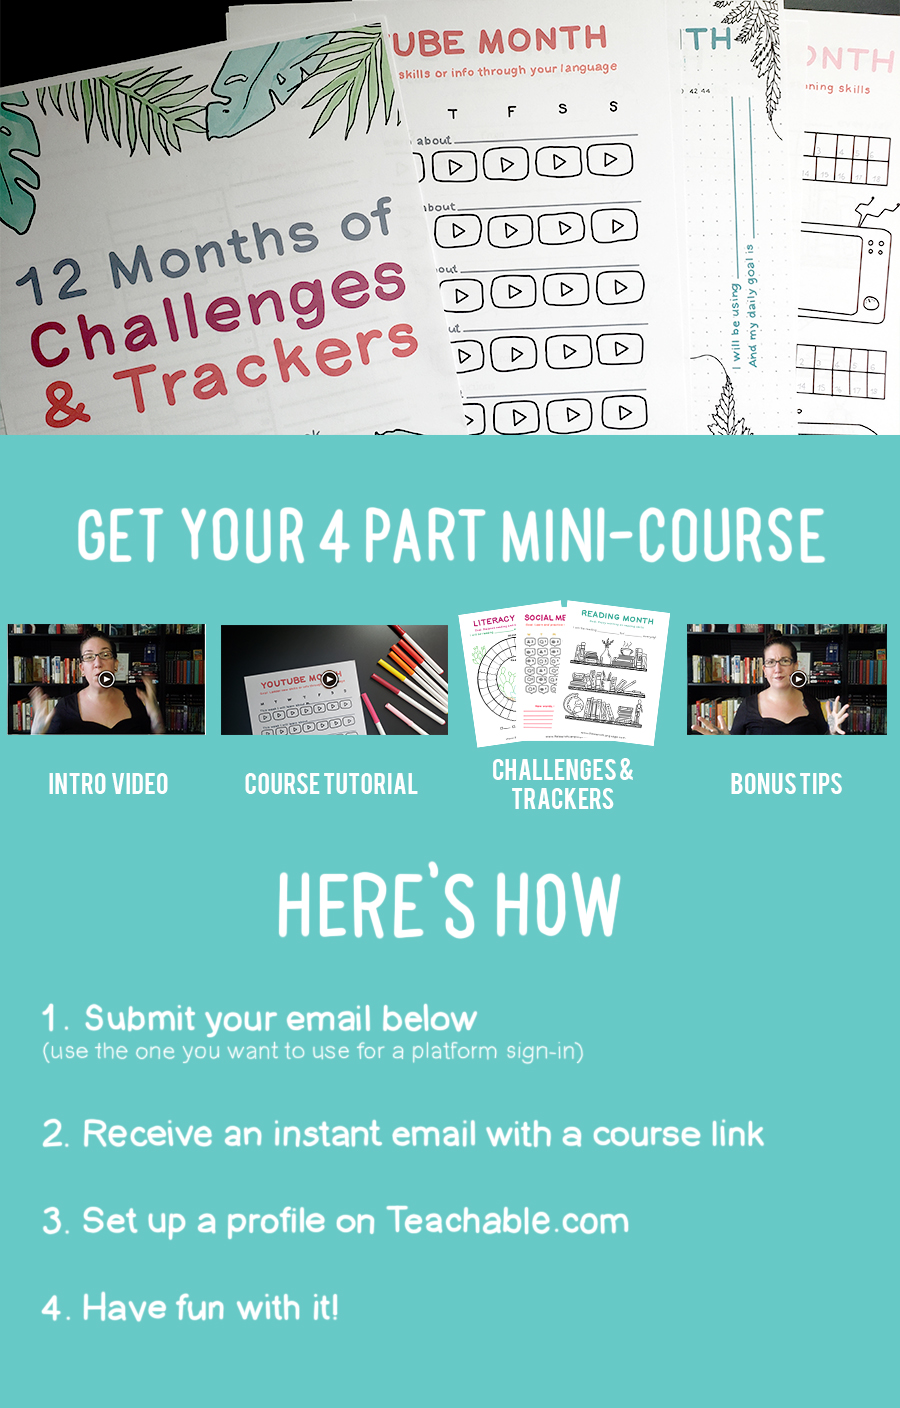 How to get the mini course: 1. Enter your email below 2. Receive an instant email with a link to the course 3. Create a profile on teachable.com 4. have fun with it!